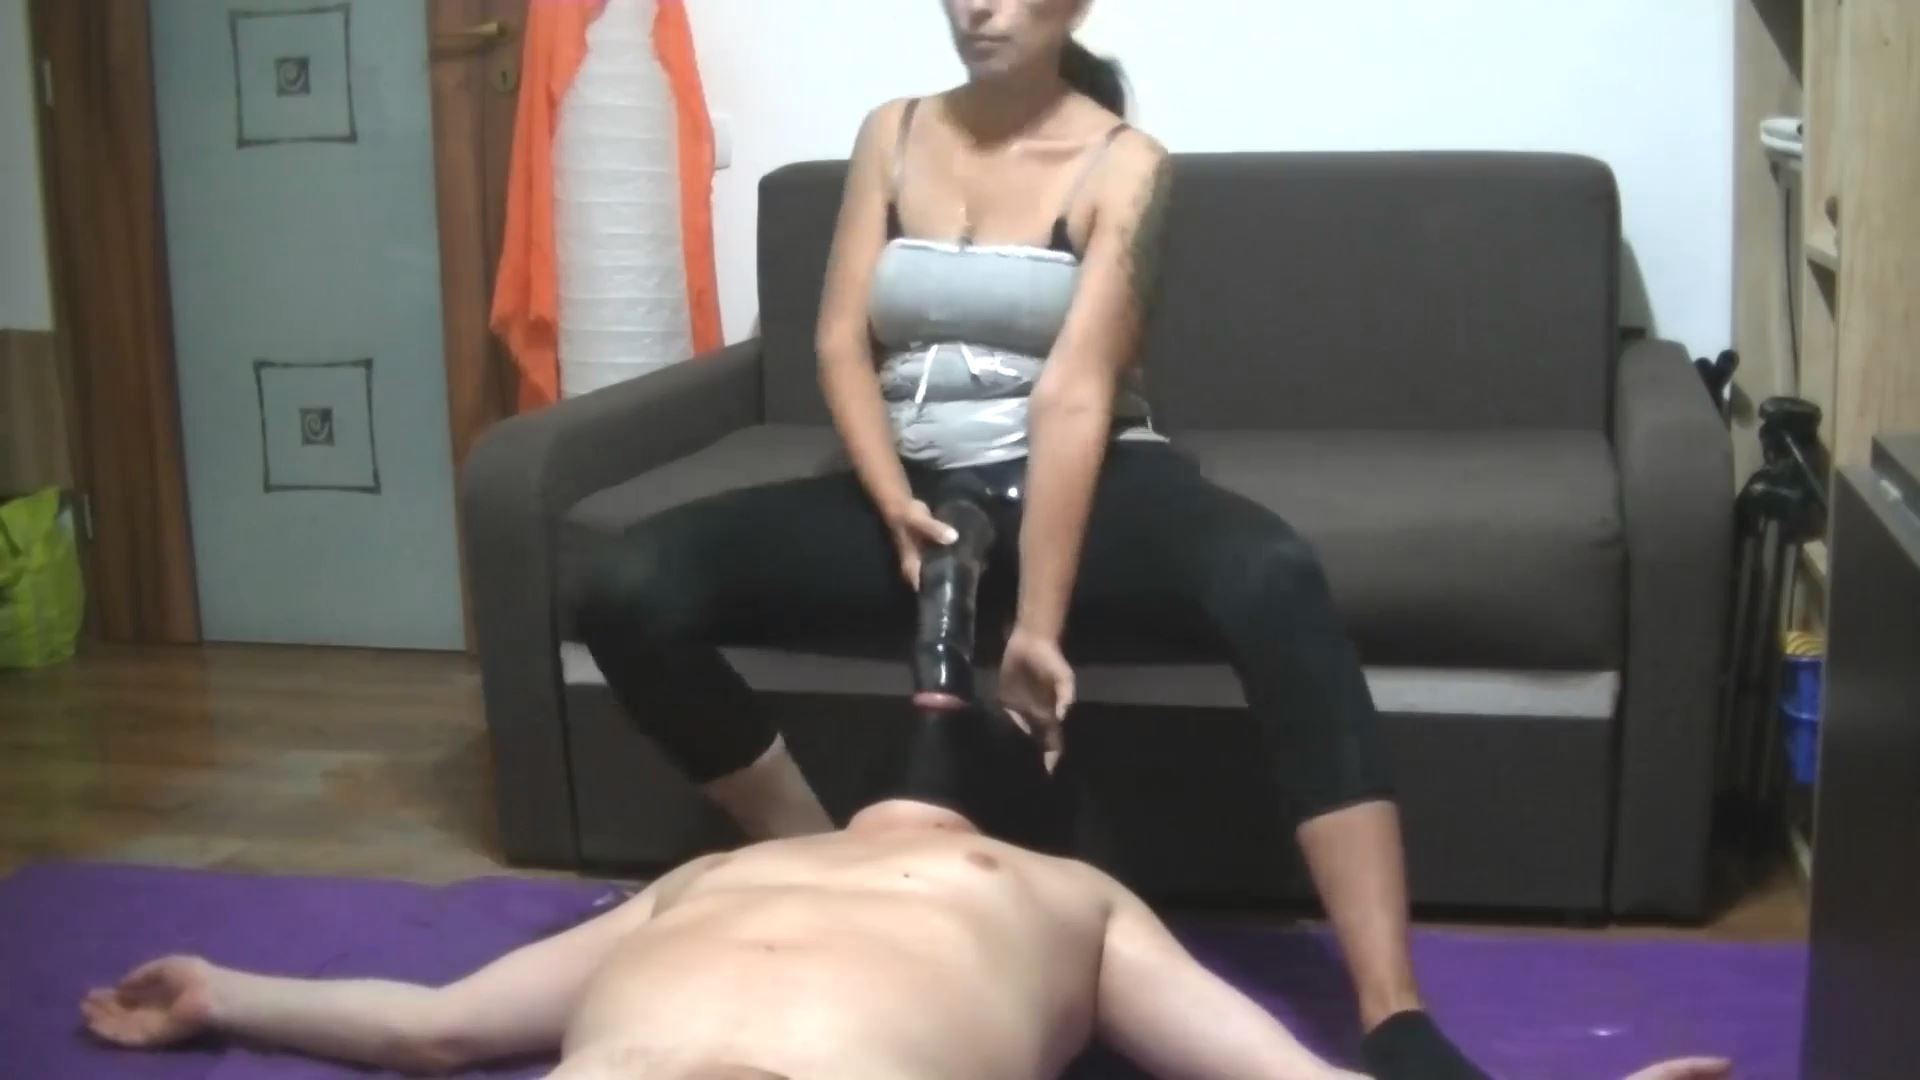 Mistress Roberta fucking her toilet mouth with strapon - BIZARRE GODDESSES - FULL HD/1080p/MP4